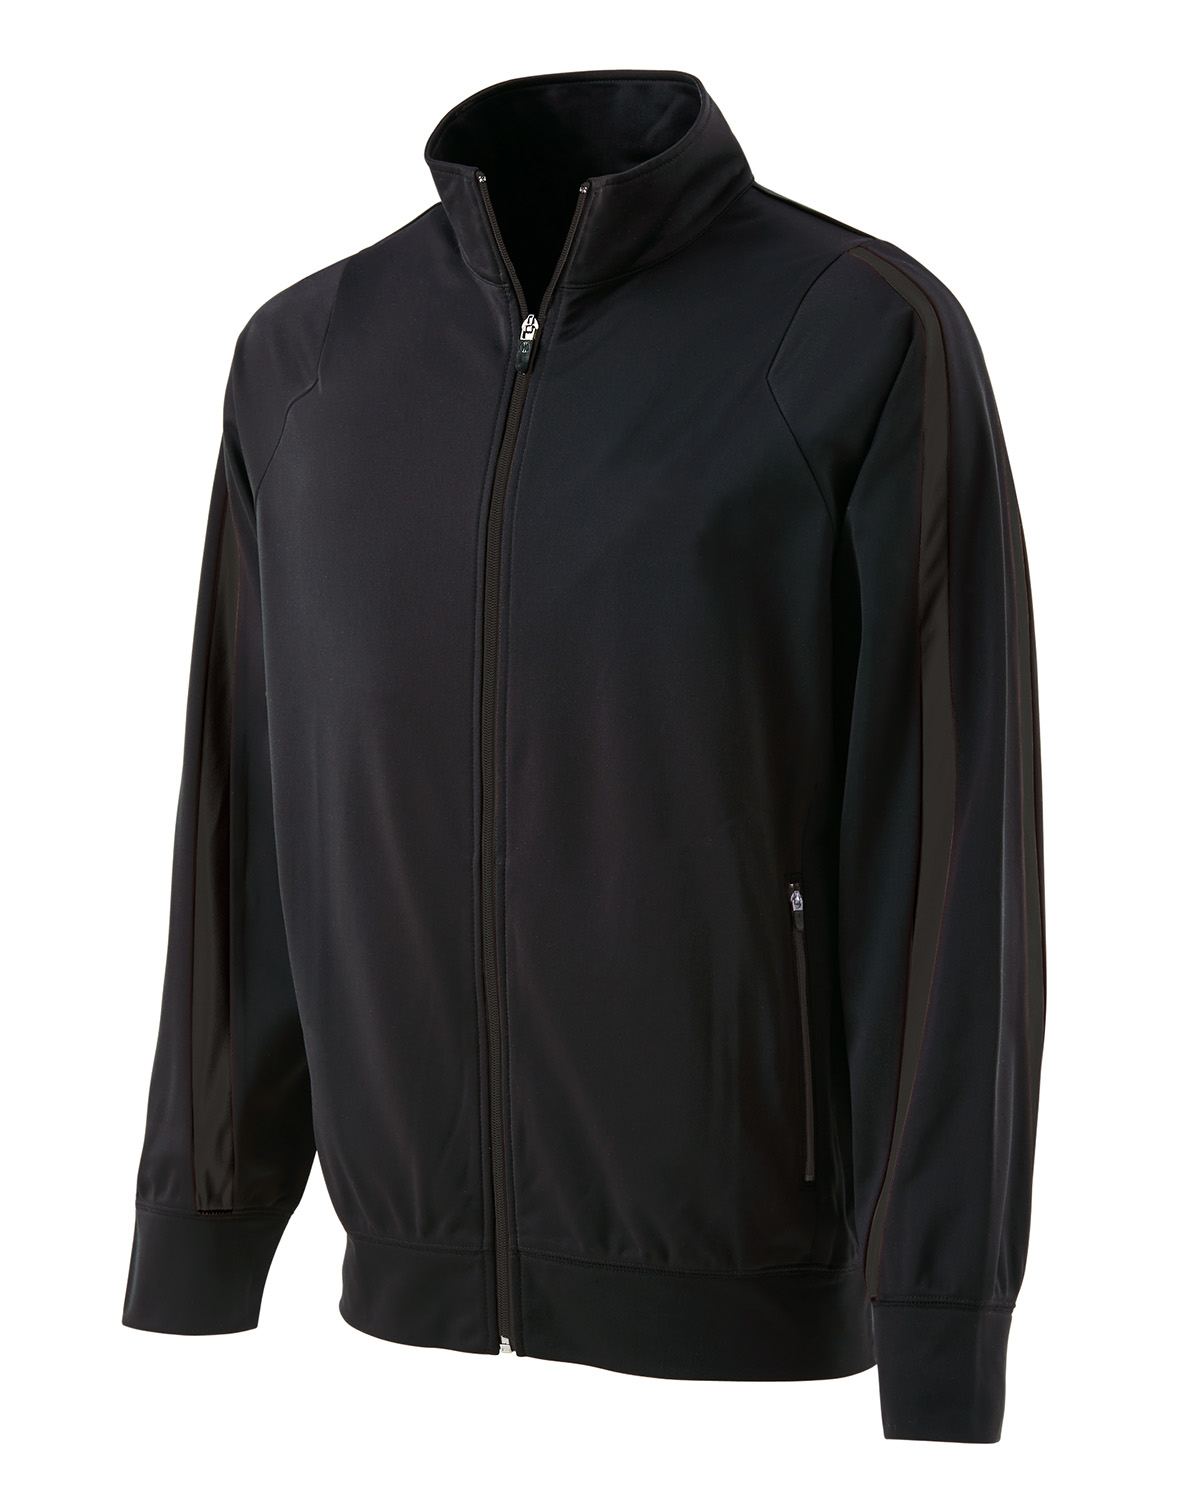 Holloway 229142 - Adult Polyester Full Zip Determination Jacket